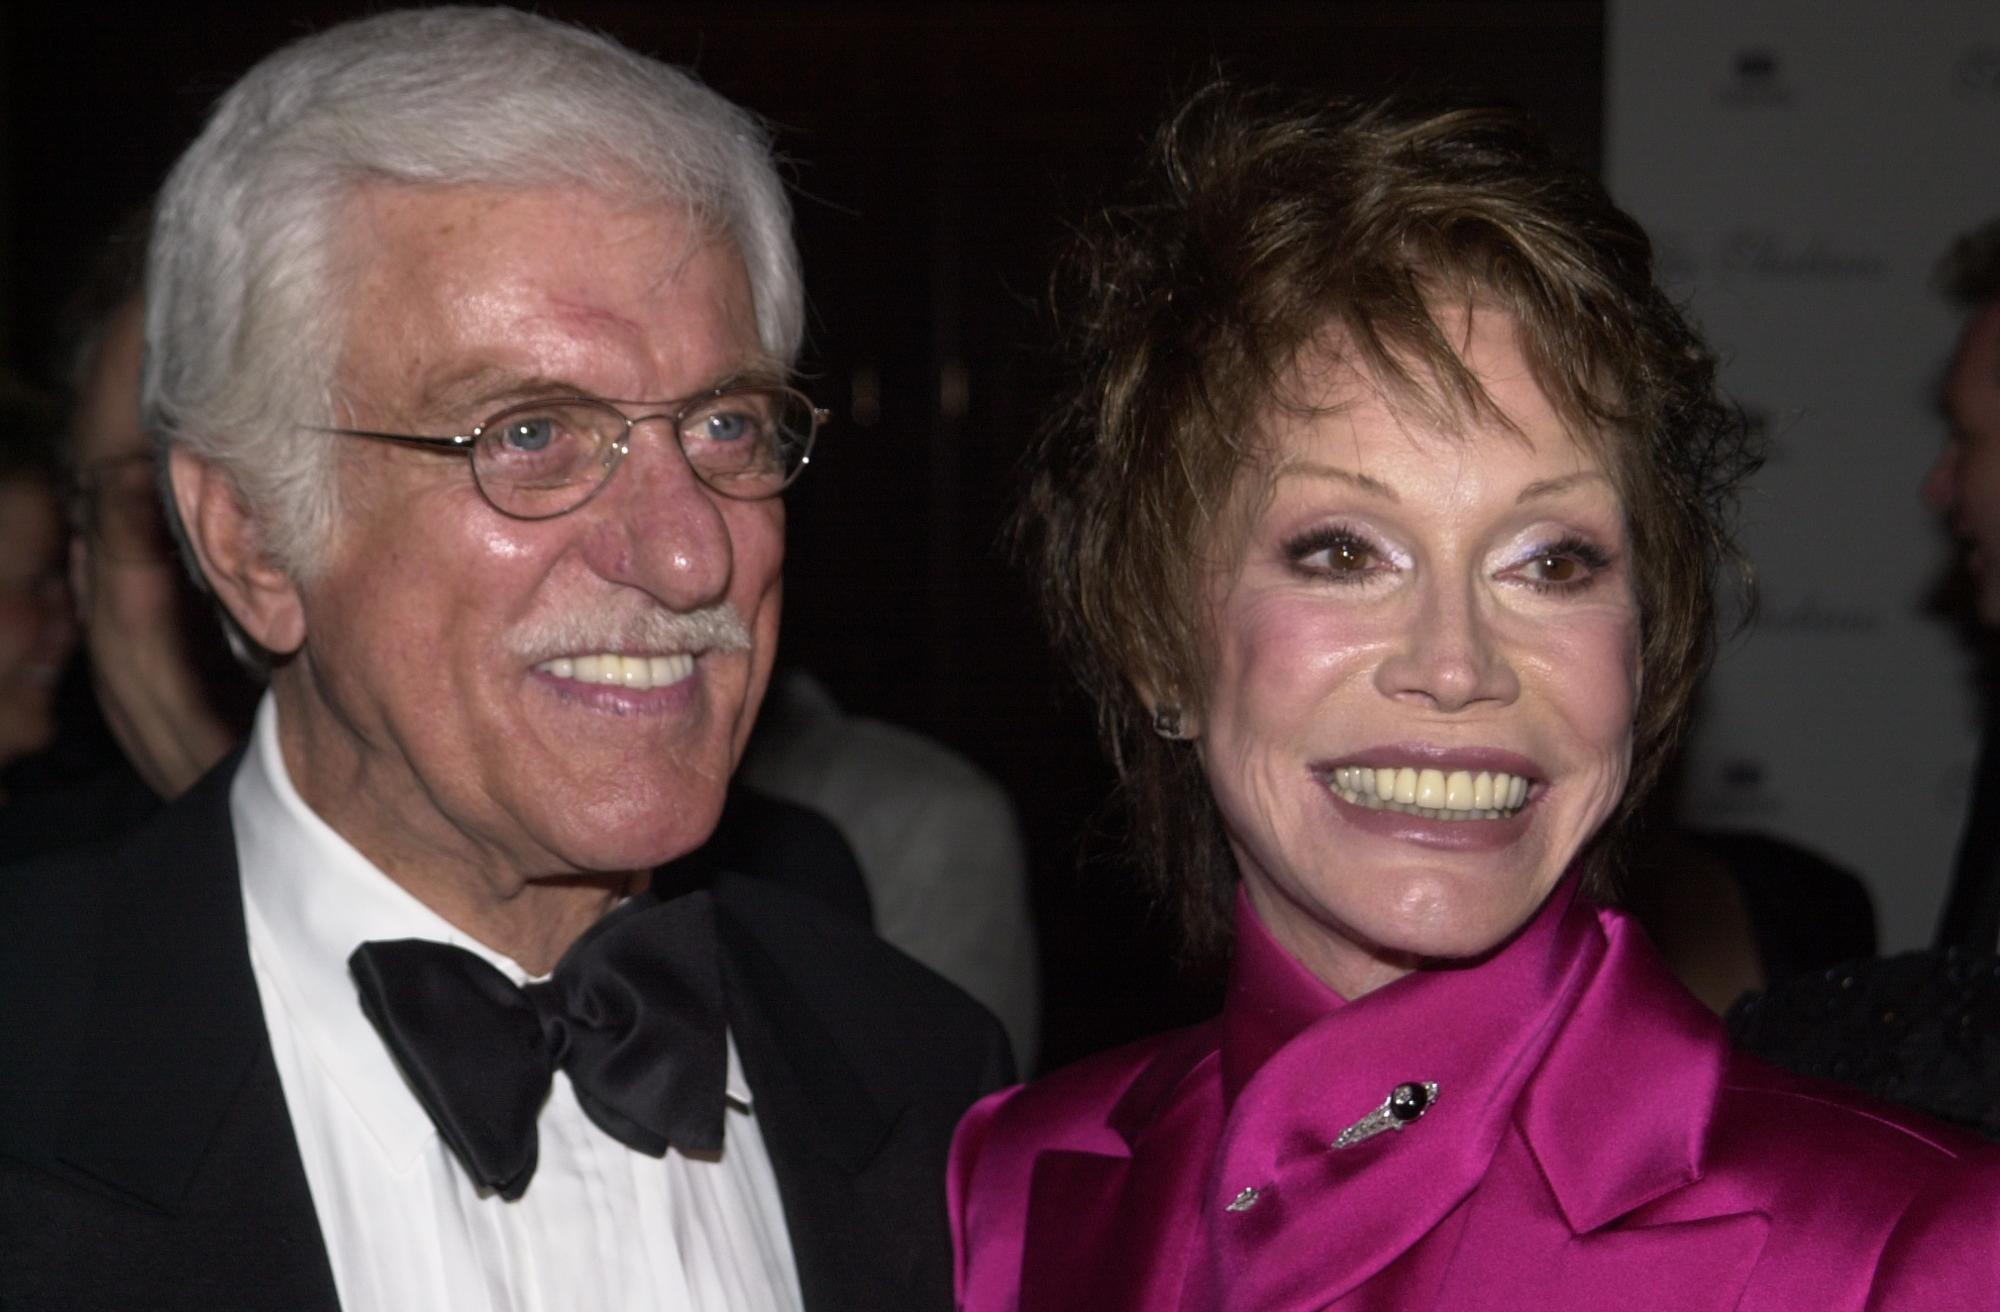 Dick Van Dyke and Mary Tyler Moore on October 7, 2000 in Century City, California | Photo: Getty Images